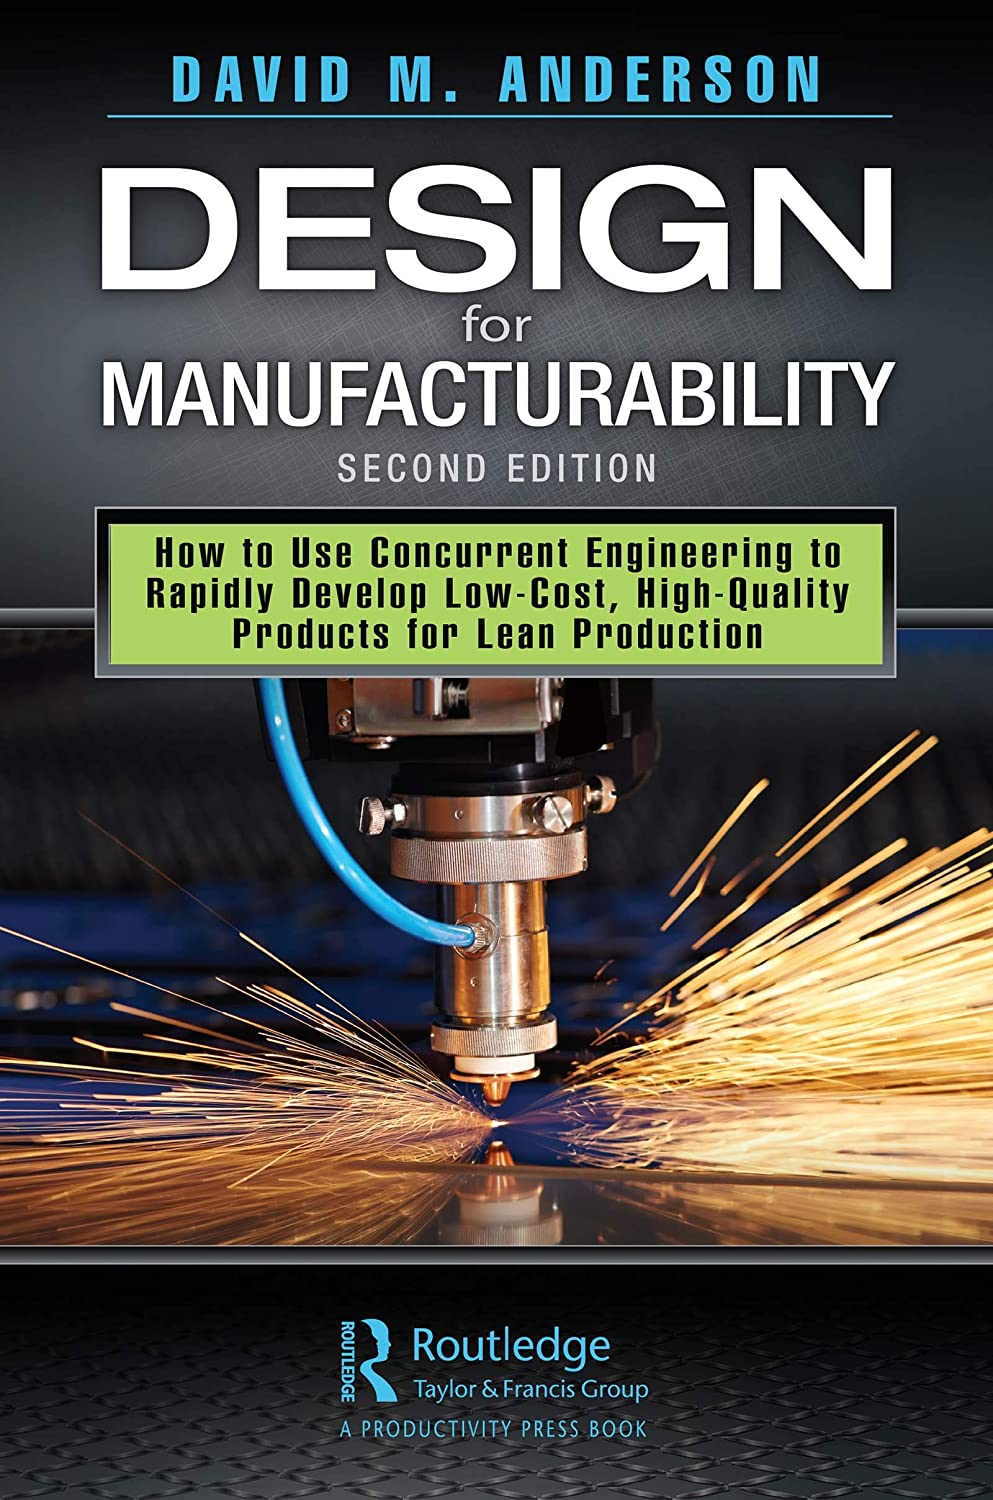 Design For Manufacturability How To Use Concurrent Engineering To Rapidly Develop Low Cost High Quality Products For Lean Production Second Edition Anderson David M Ebook Amazon Com